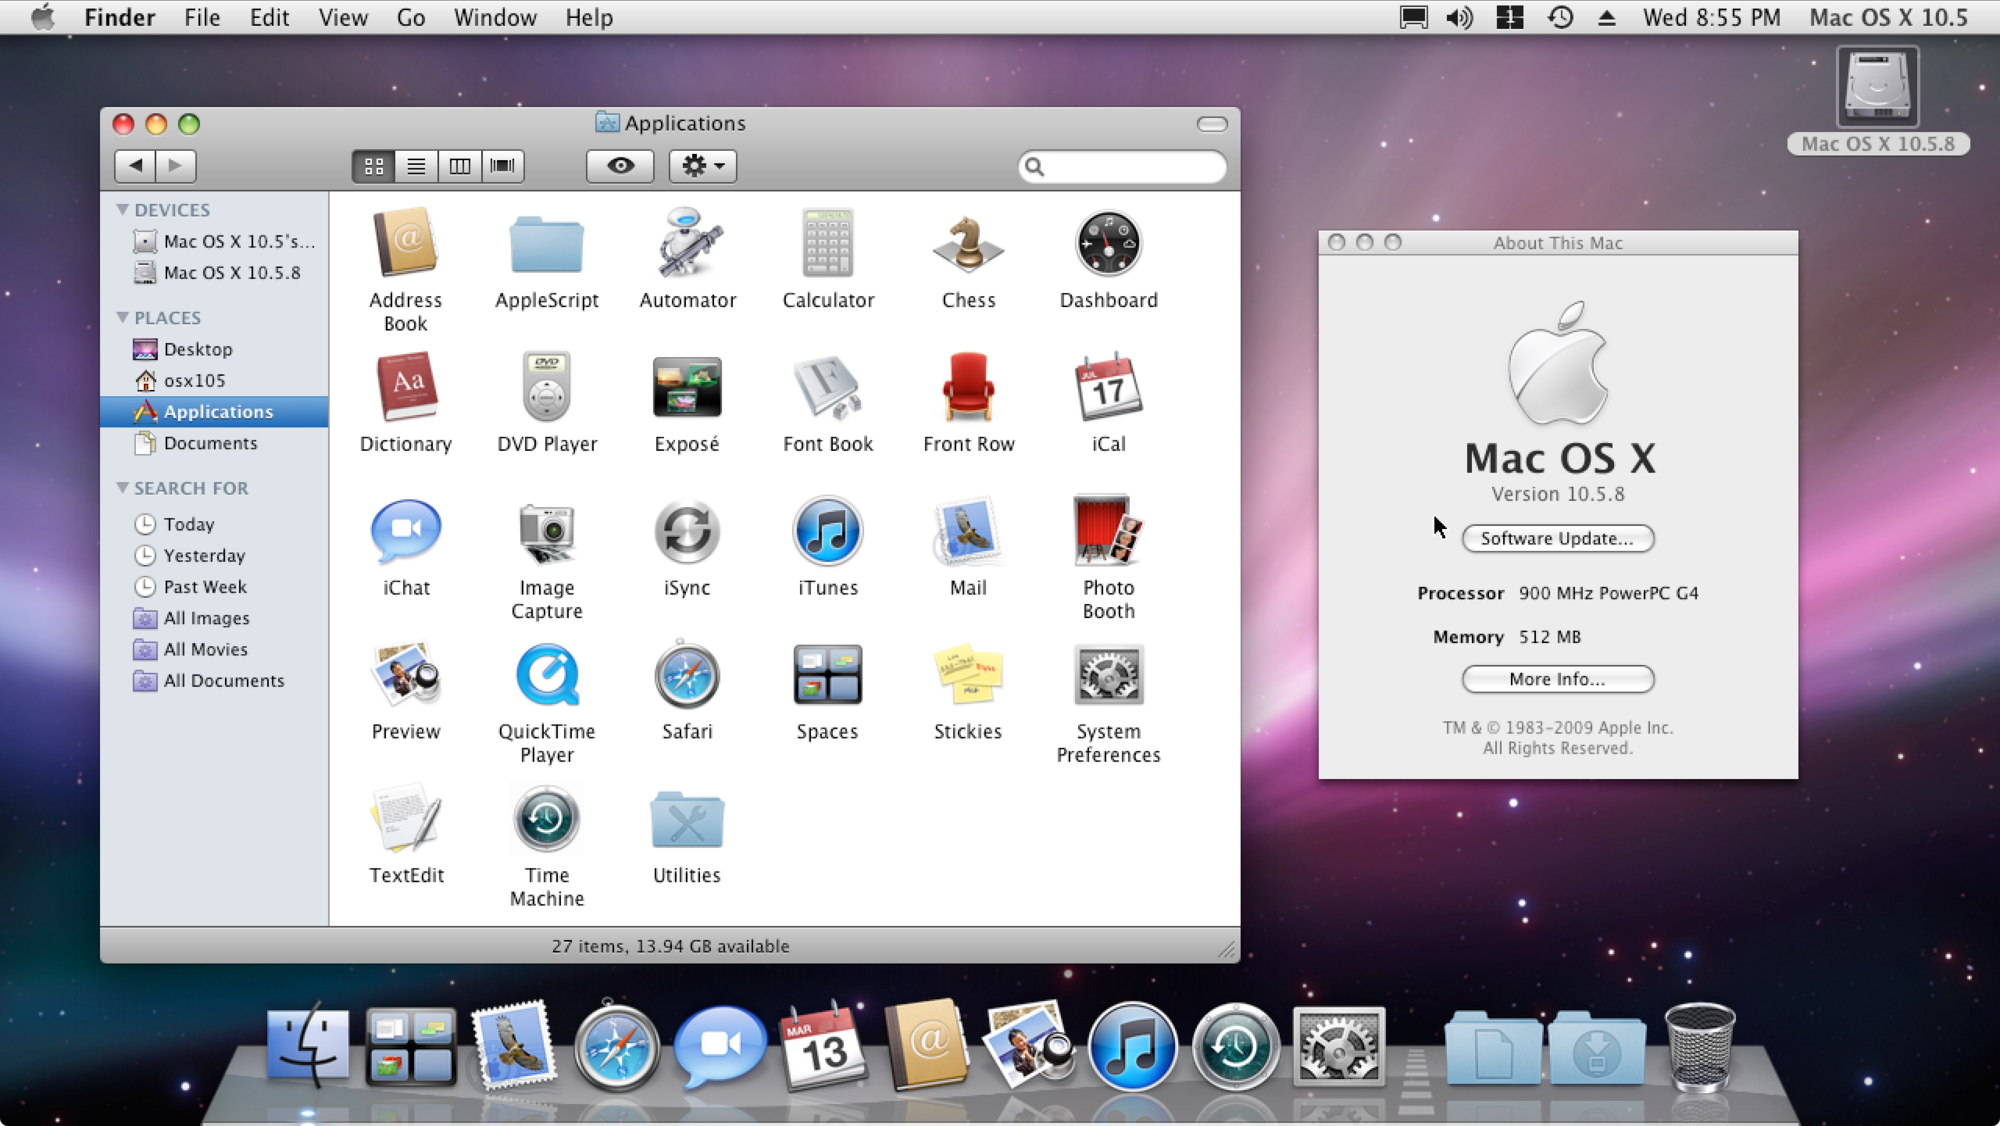 how to create new user on mac 10.5.8